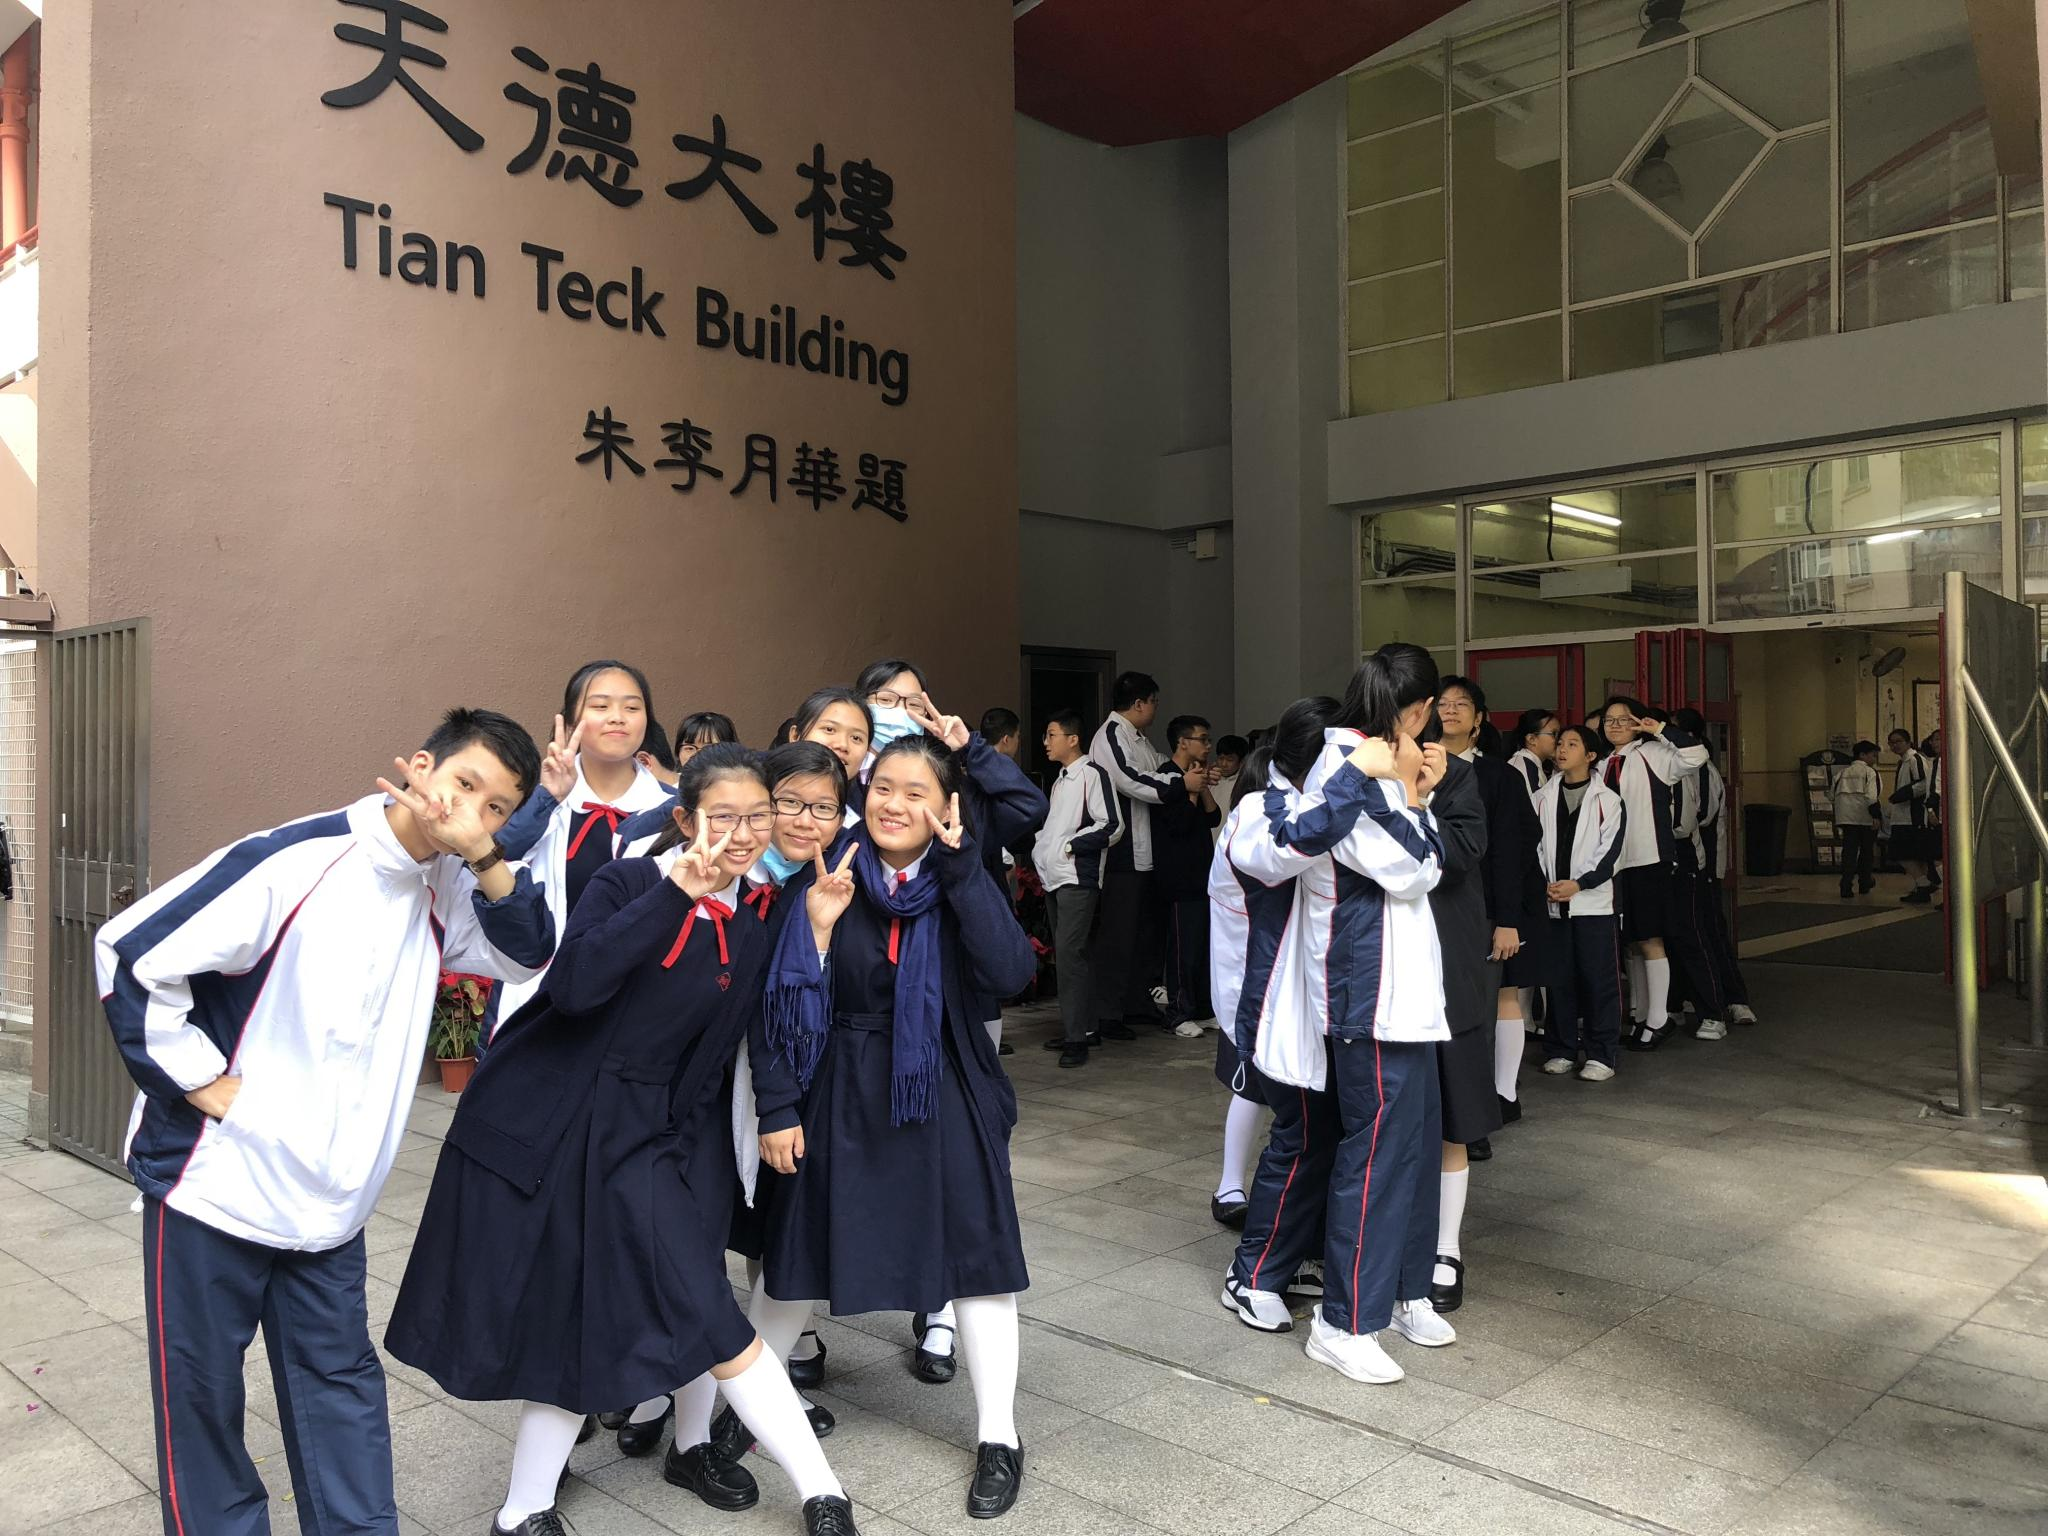 The students were ready to go to the concert hall.